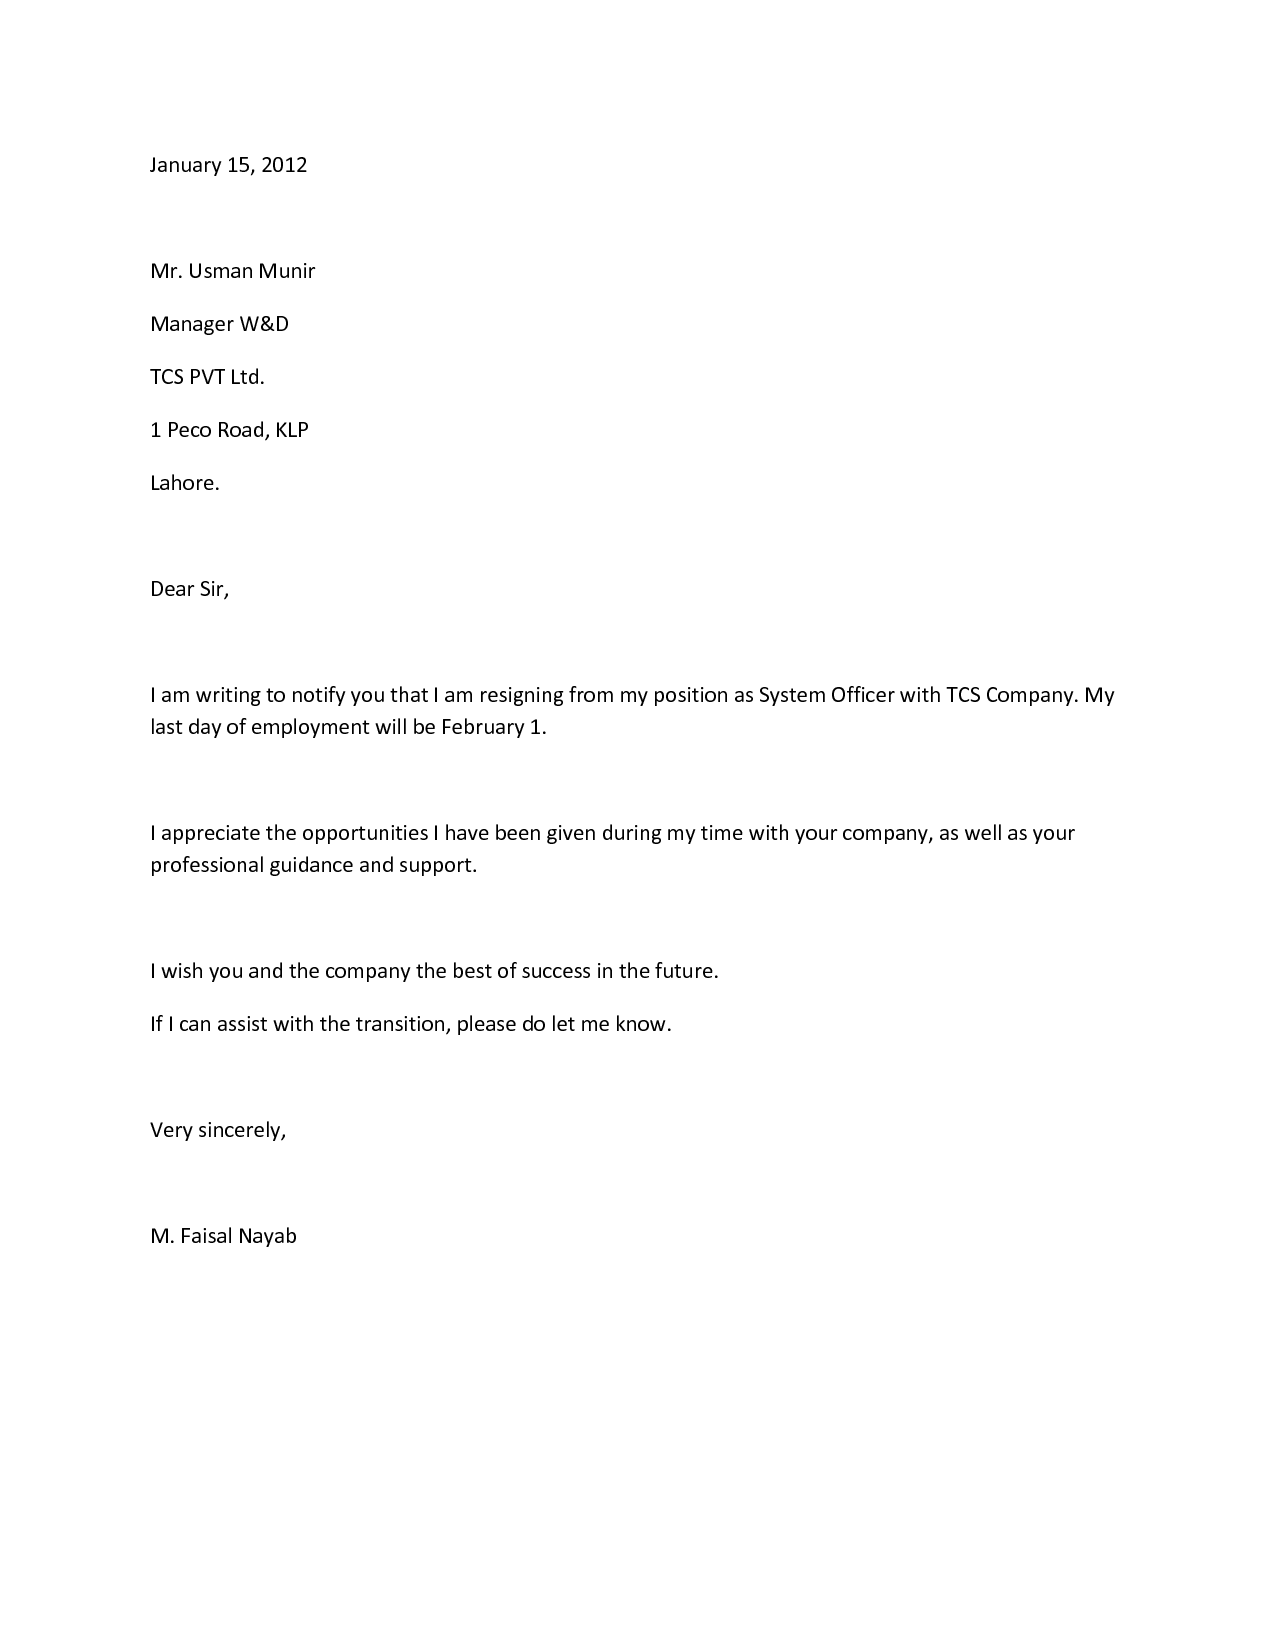 resignation letter sample 2 weeks notice google search how to write a proper resignation letter images